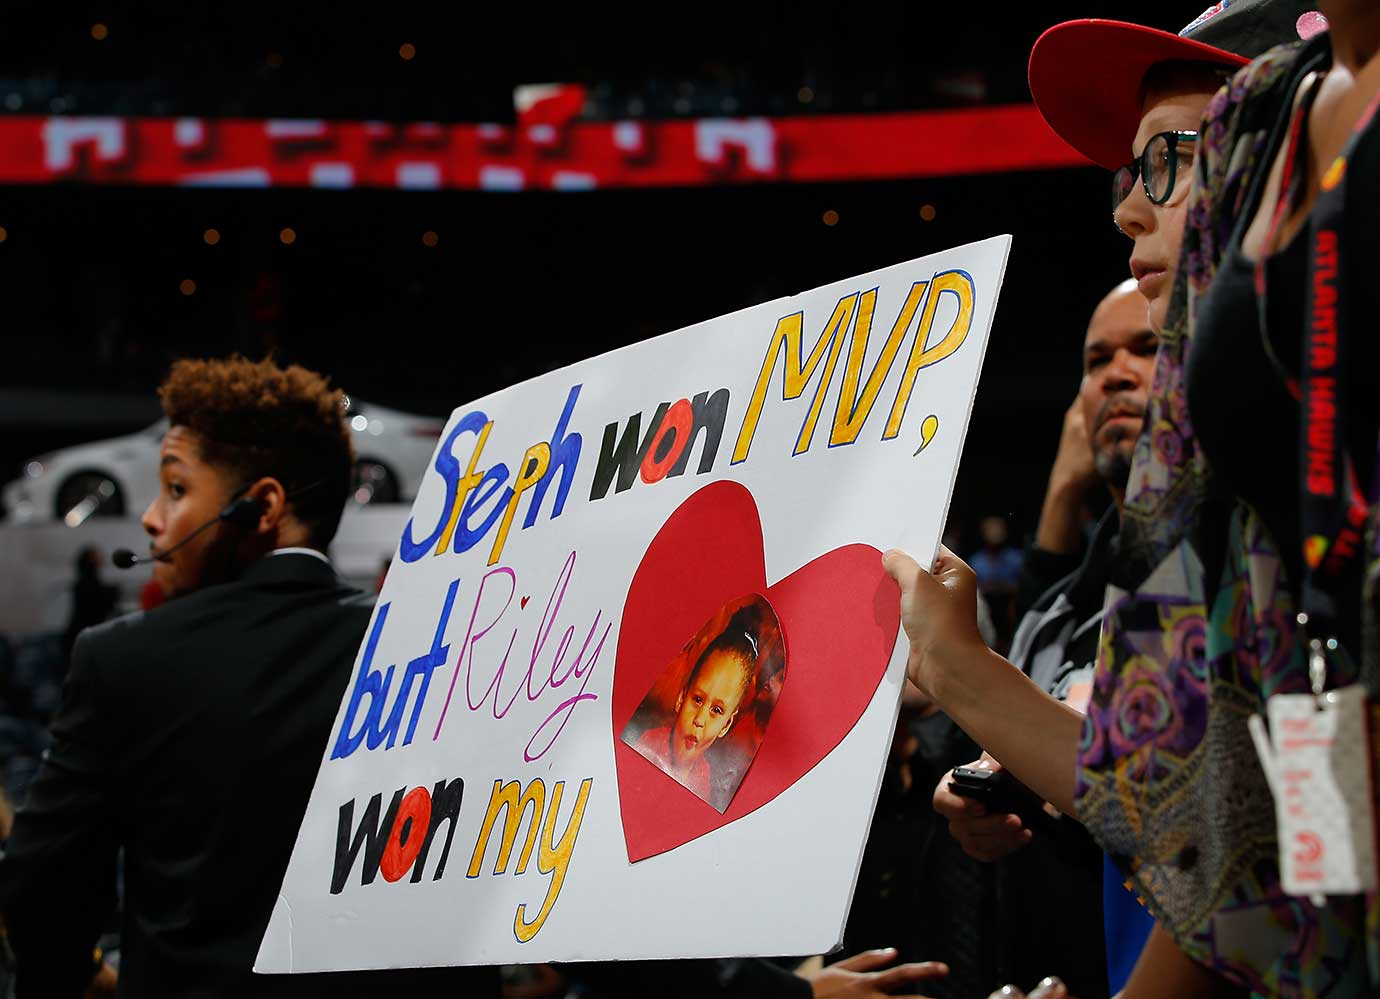 A fan holds up a sign for Stephen Curry of the Warriors after their 102-92 win over the Atlanta Hawks.